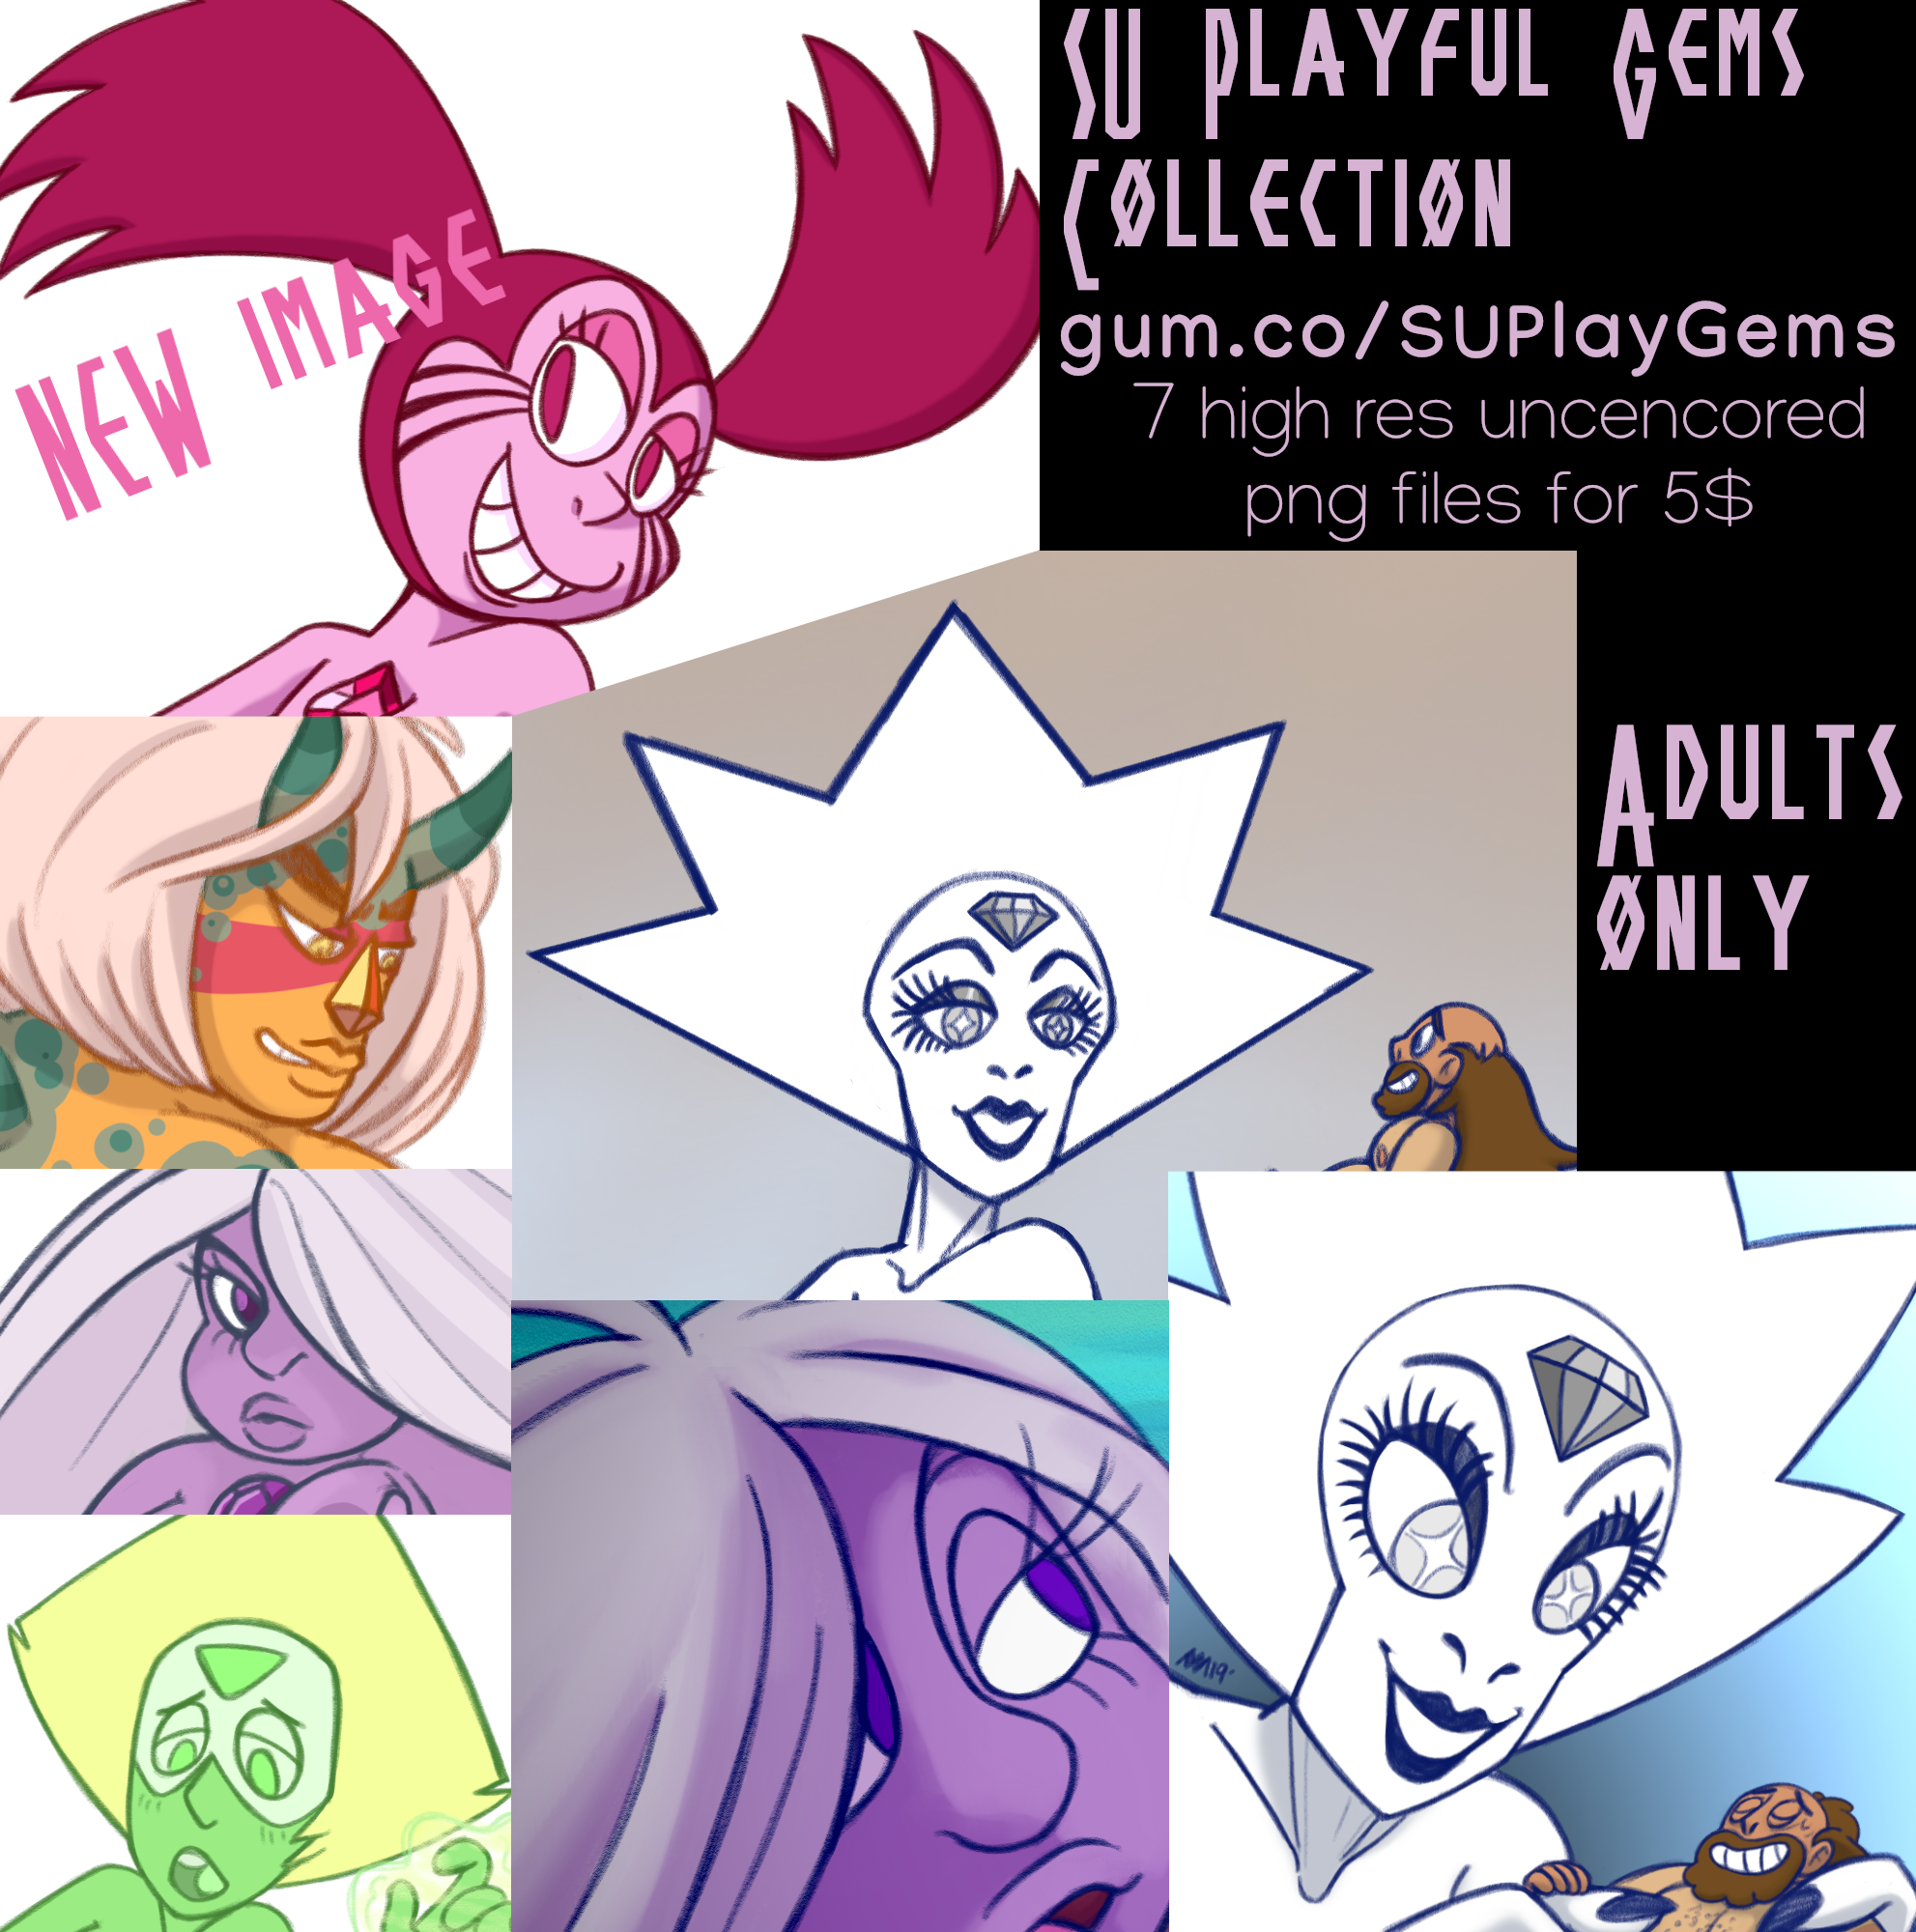 SU Playful Gems Collection for $$